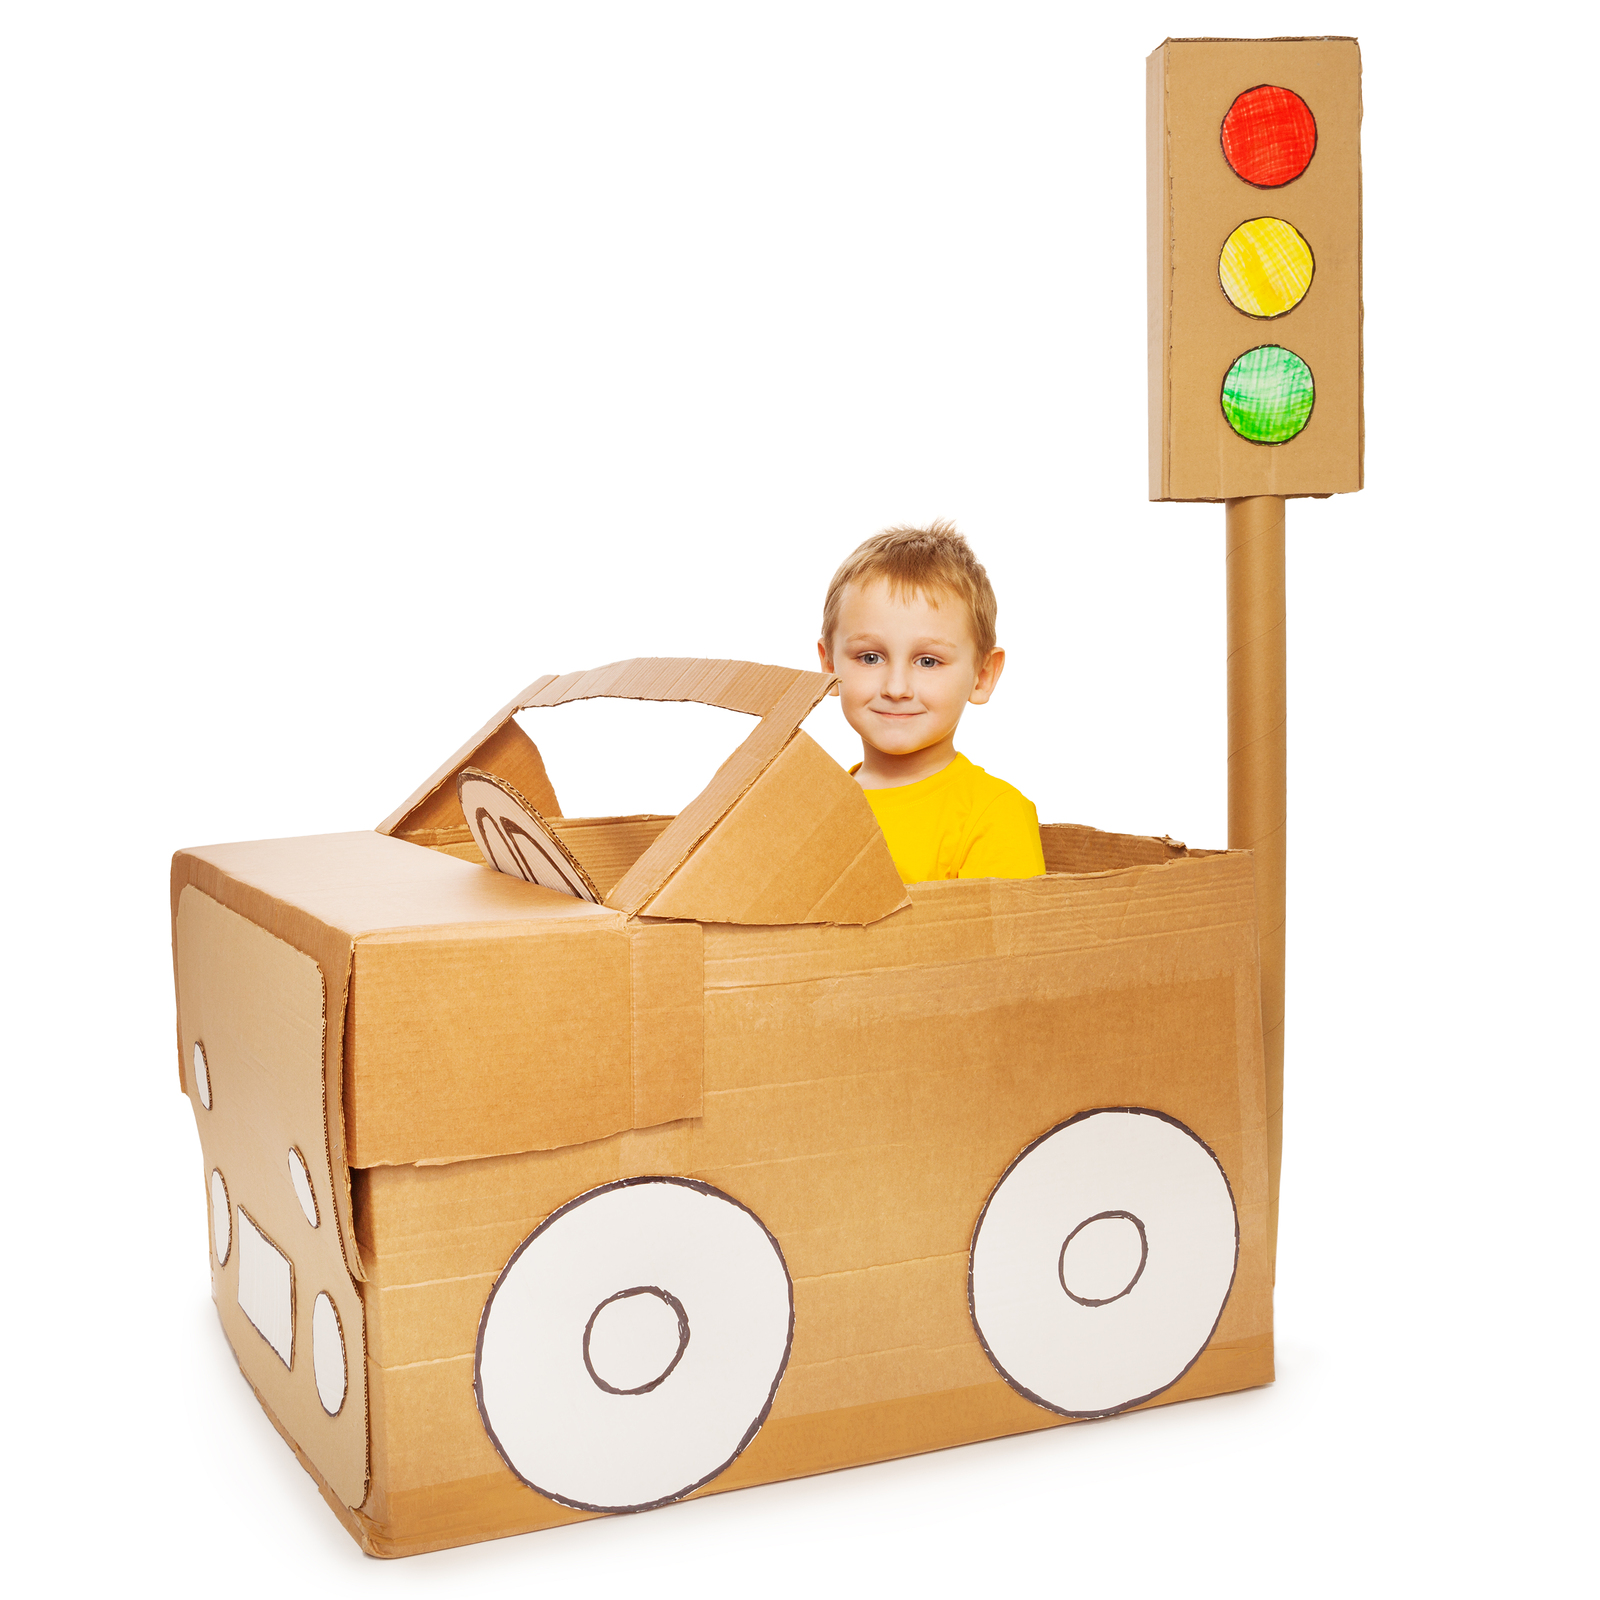 Little boy driving his handmade cardboard car, isolated on white background